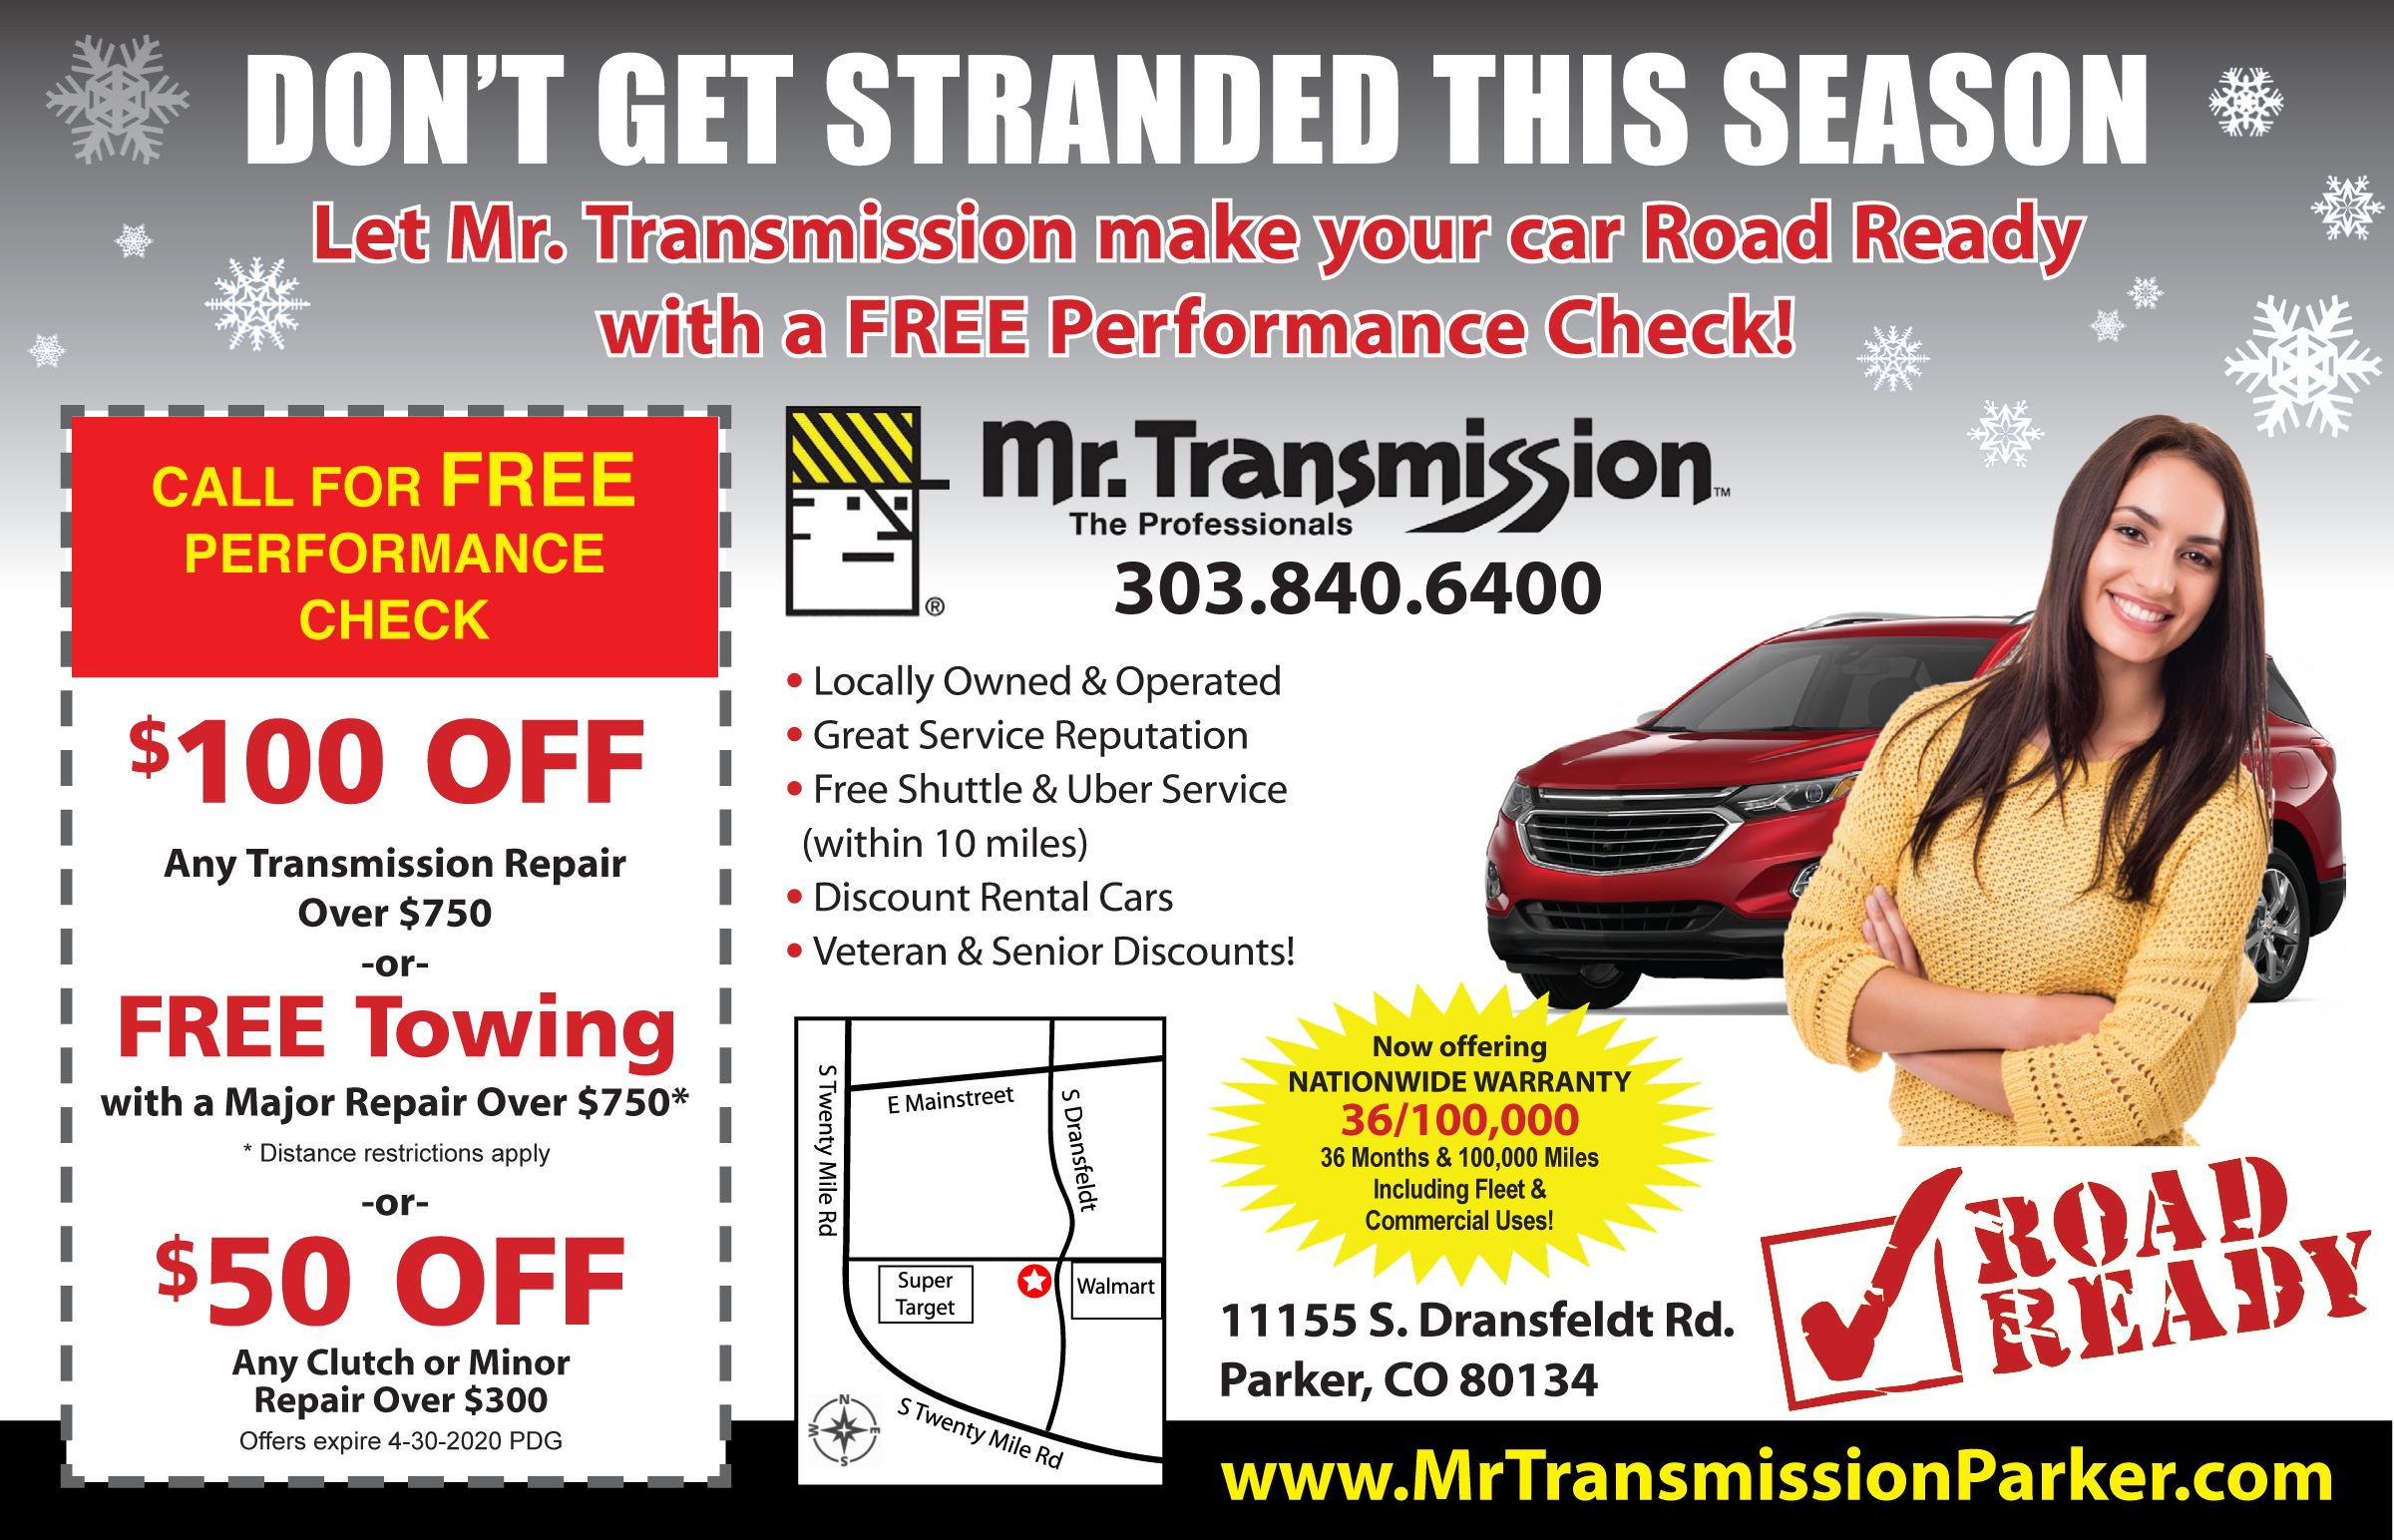 Don T Get Stranded This Winter Check Out Our Coupons Here Https Mrtransmissionparker Com Coupons Transmission Repair Car Rental Transmission